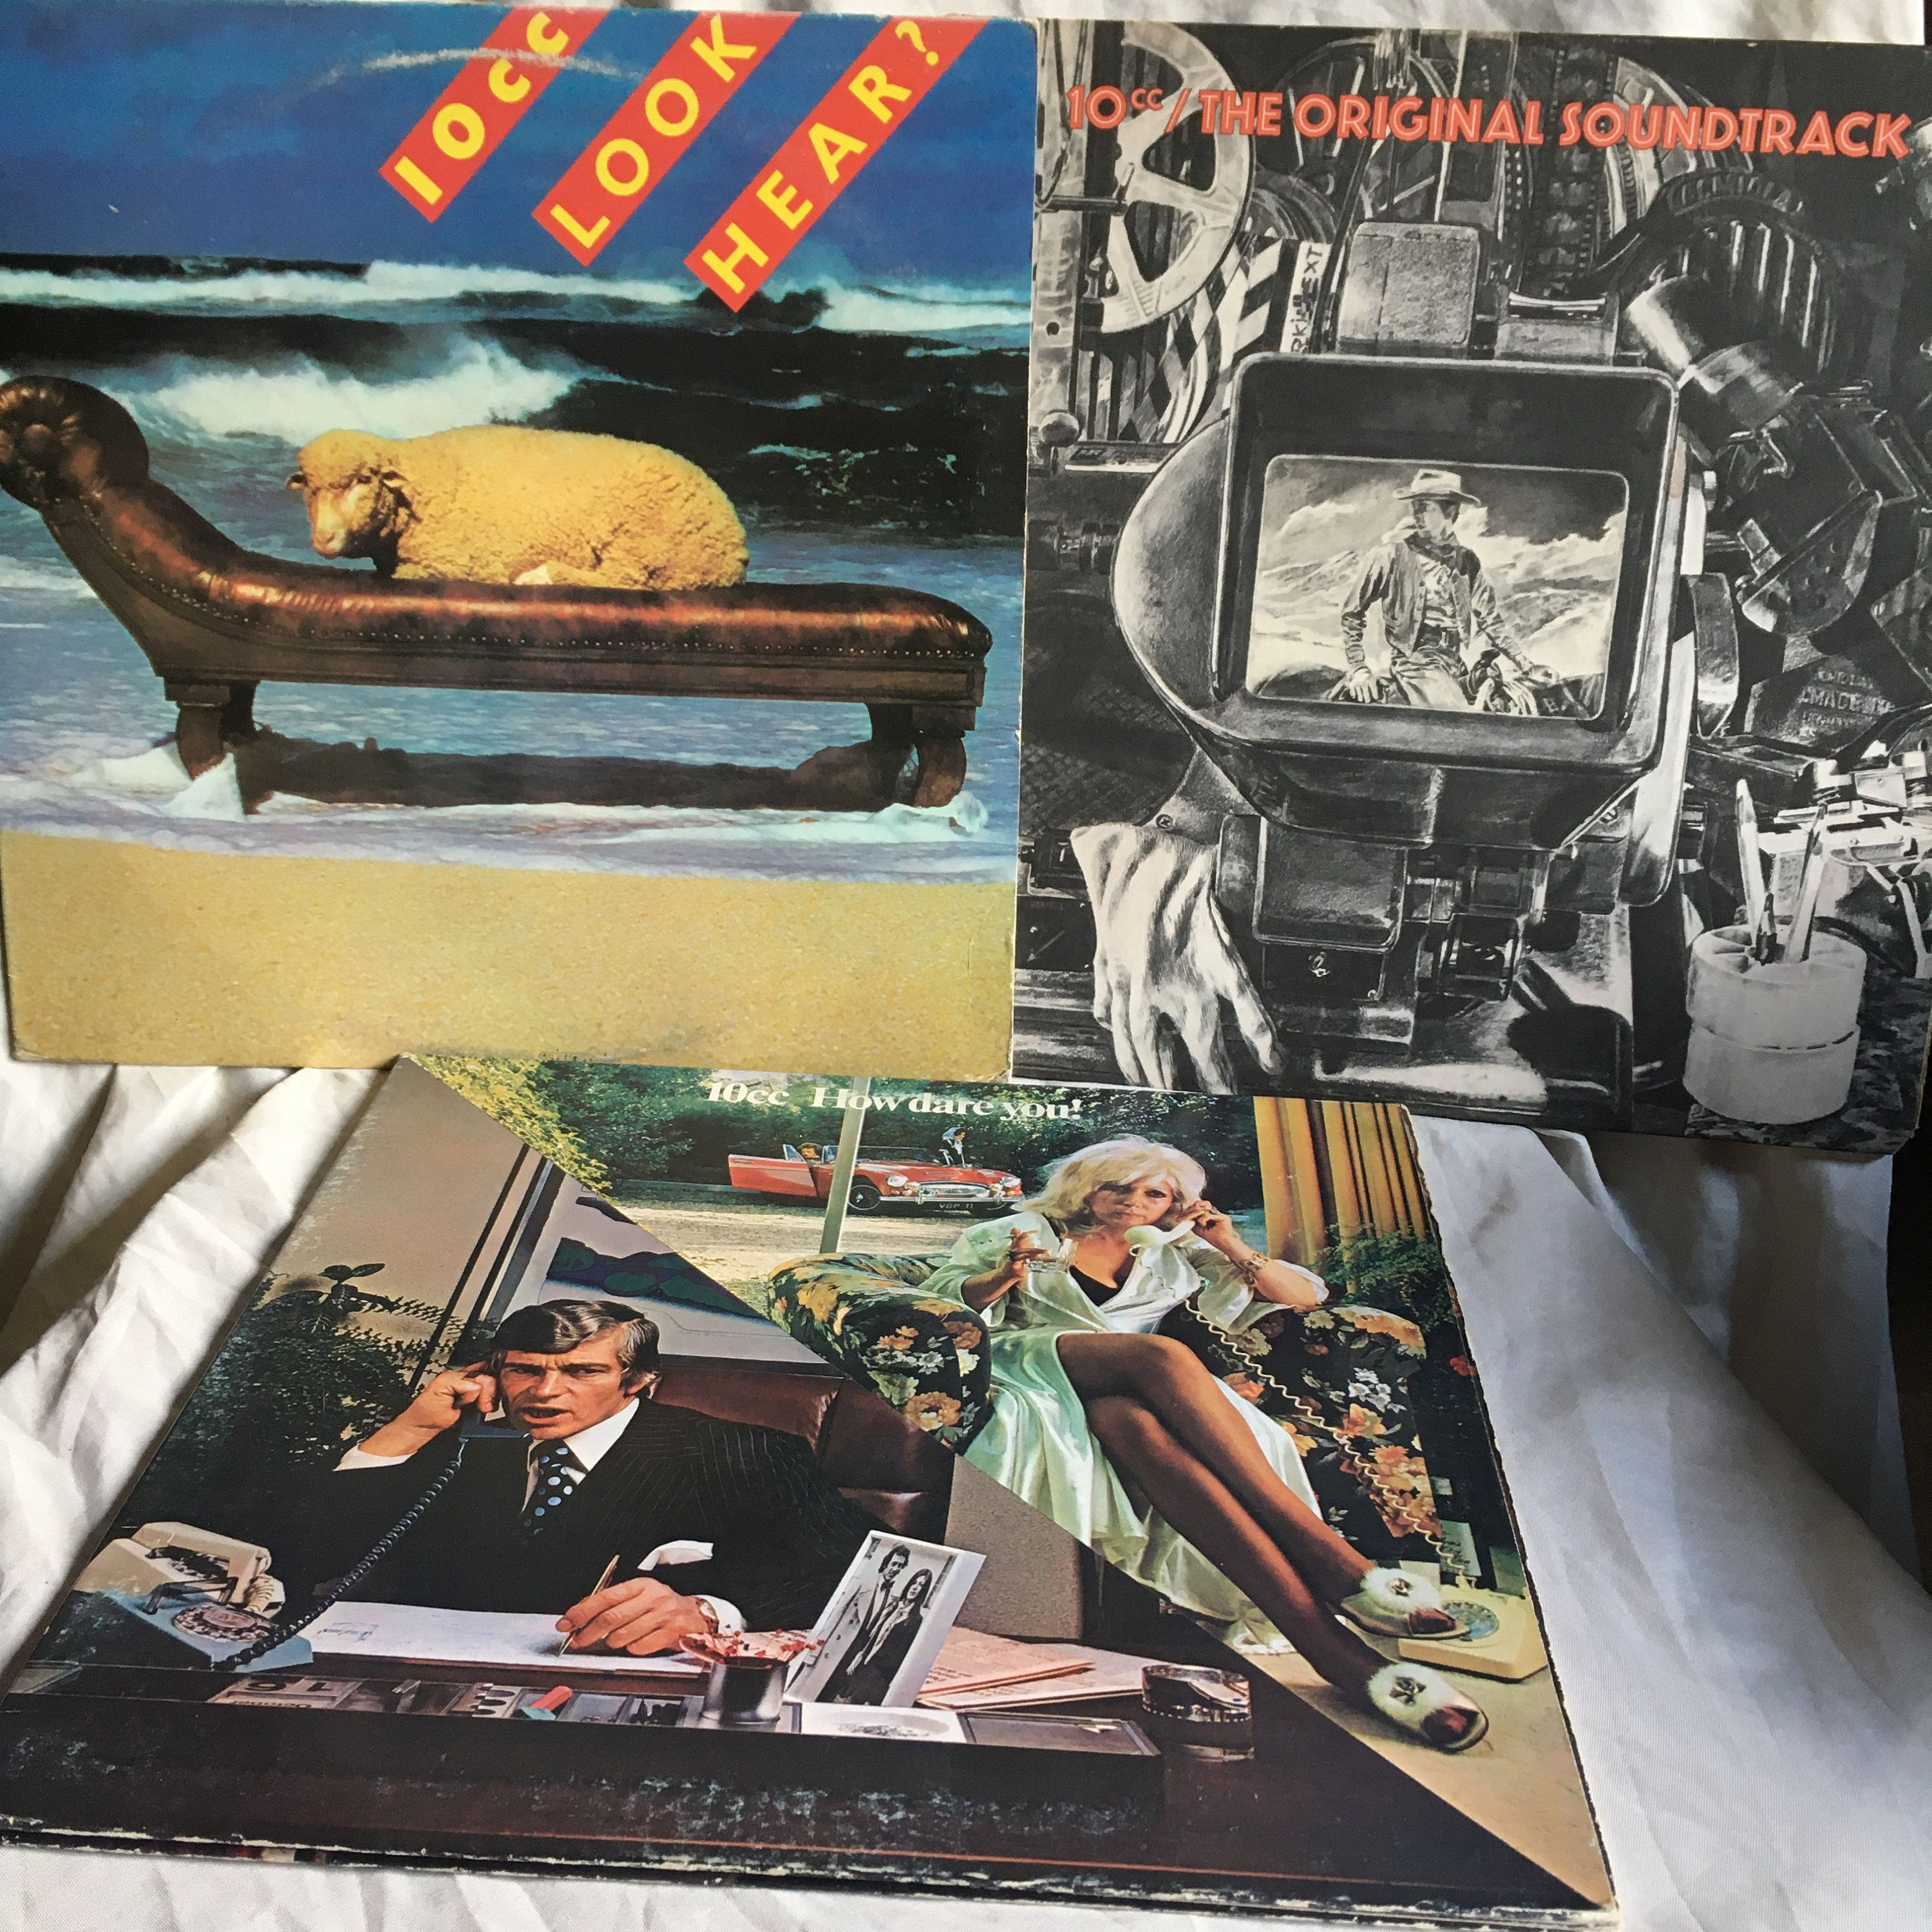 10cc The Original Soundtrack How Dare You Look Hear Etsy In 2020 Venus And Mars Rock And Roll Vinyl